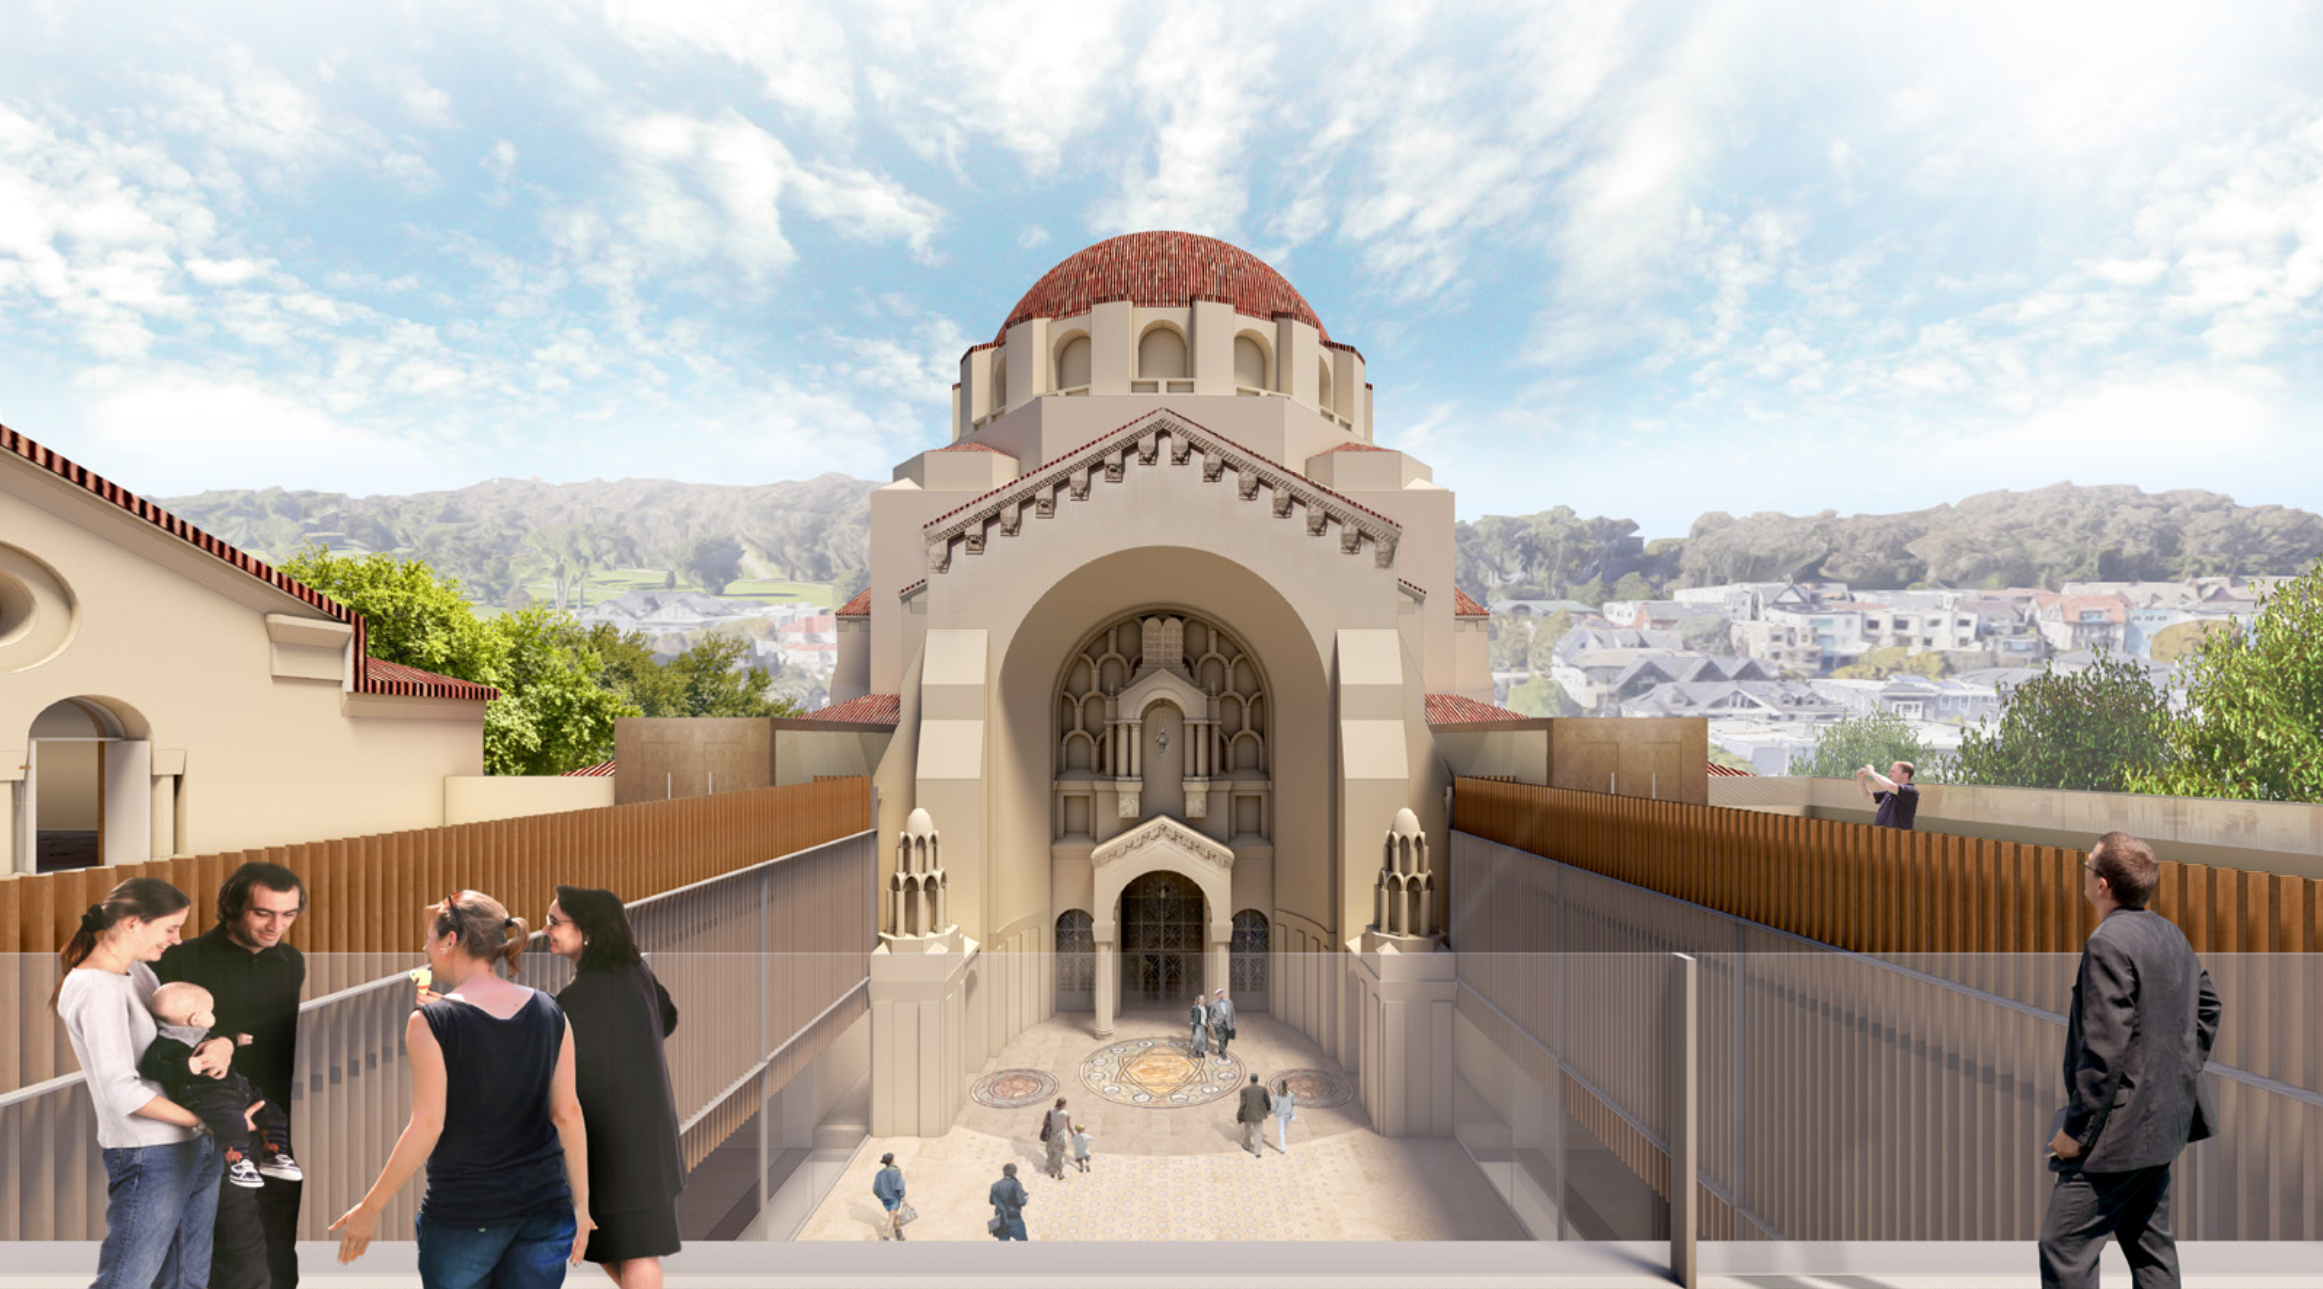 Under the planned renovation of Congregation Emanu-El in San Francisco, a new roof deck will be added on top of the existing courtyard portico. (Rendering courtesy of Mark Cavagnero Associates)